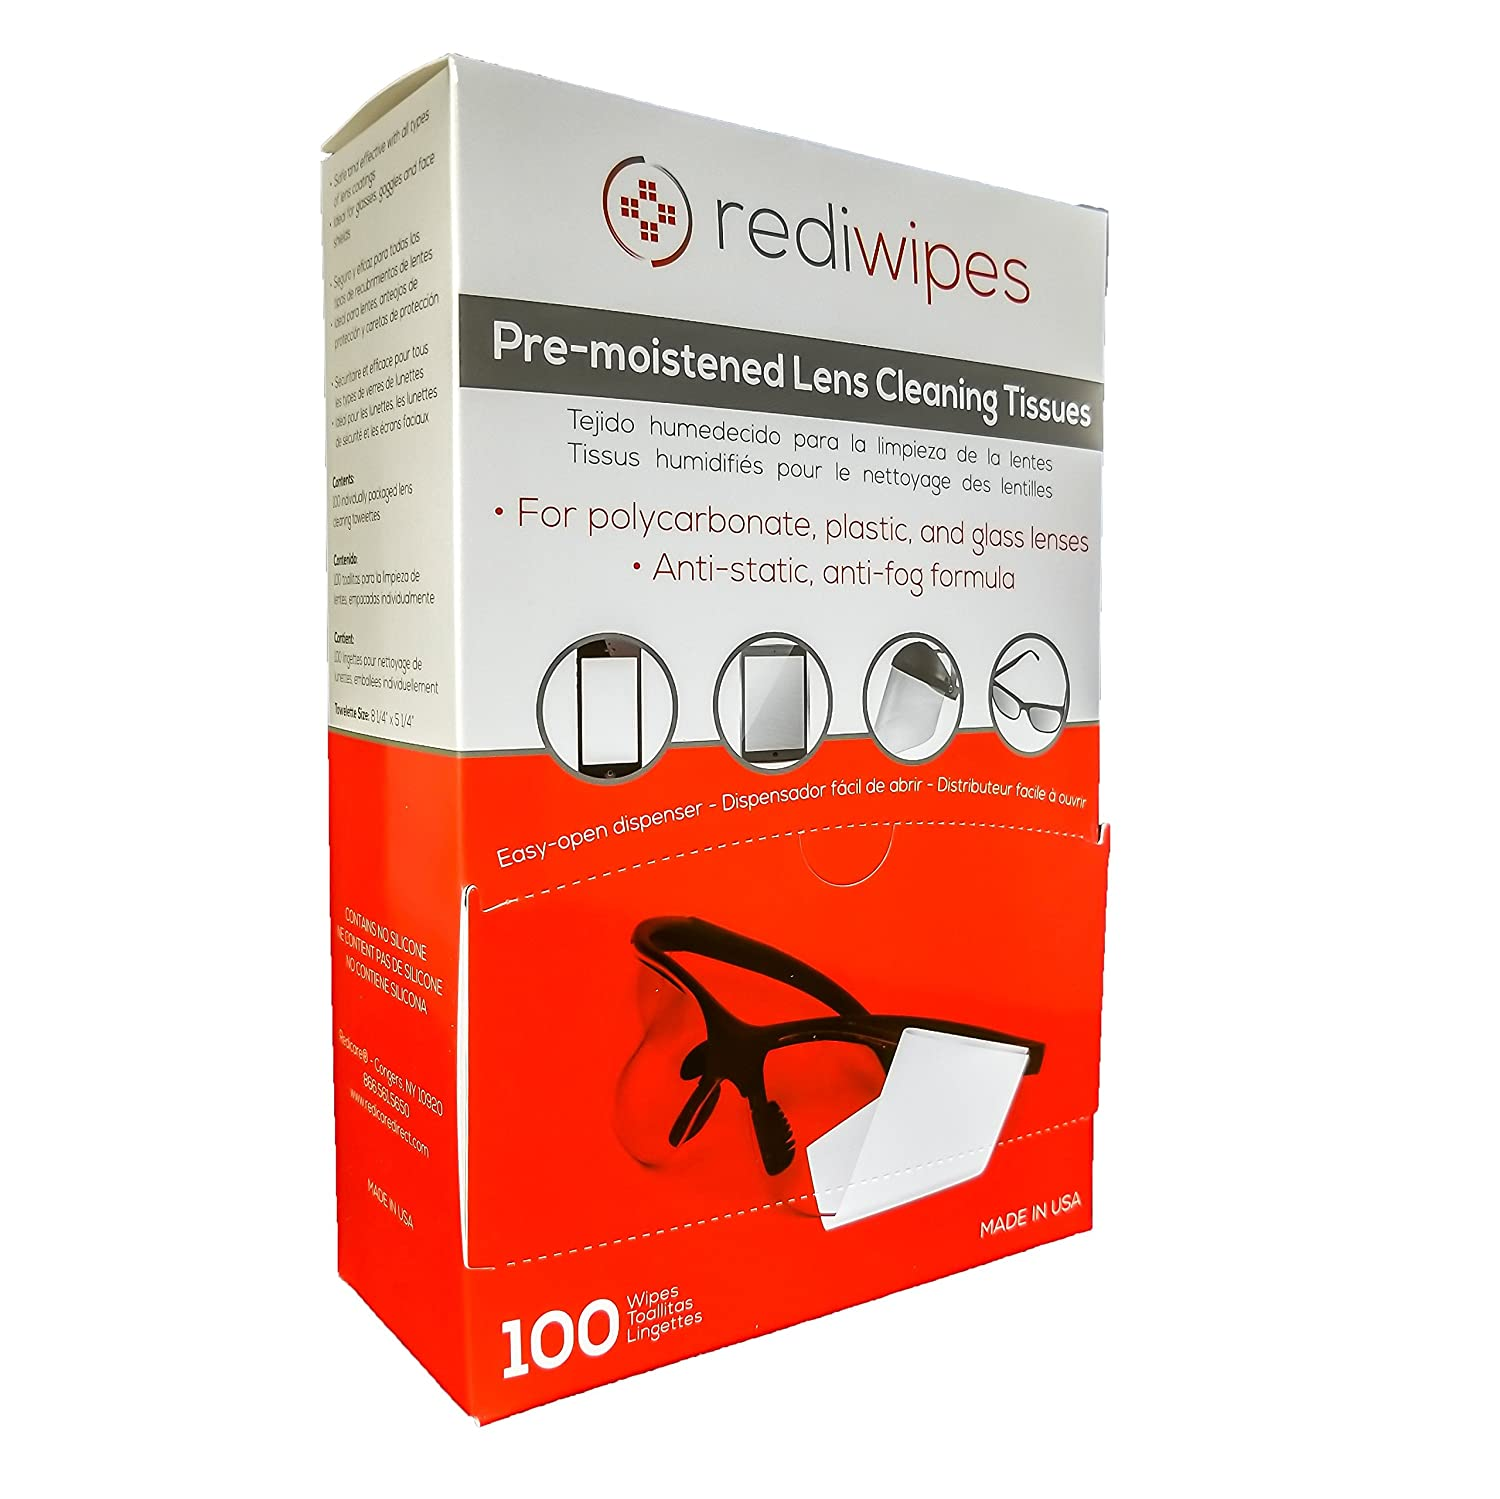 Amazon.com: Large Pre-Moistened Lens Cleaning Wipes - Rediwipes For plastic, glass lenses, monitors, screens, phones - streak free cleaning - 100 wipes.